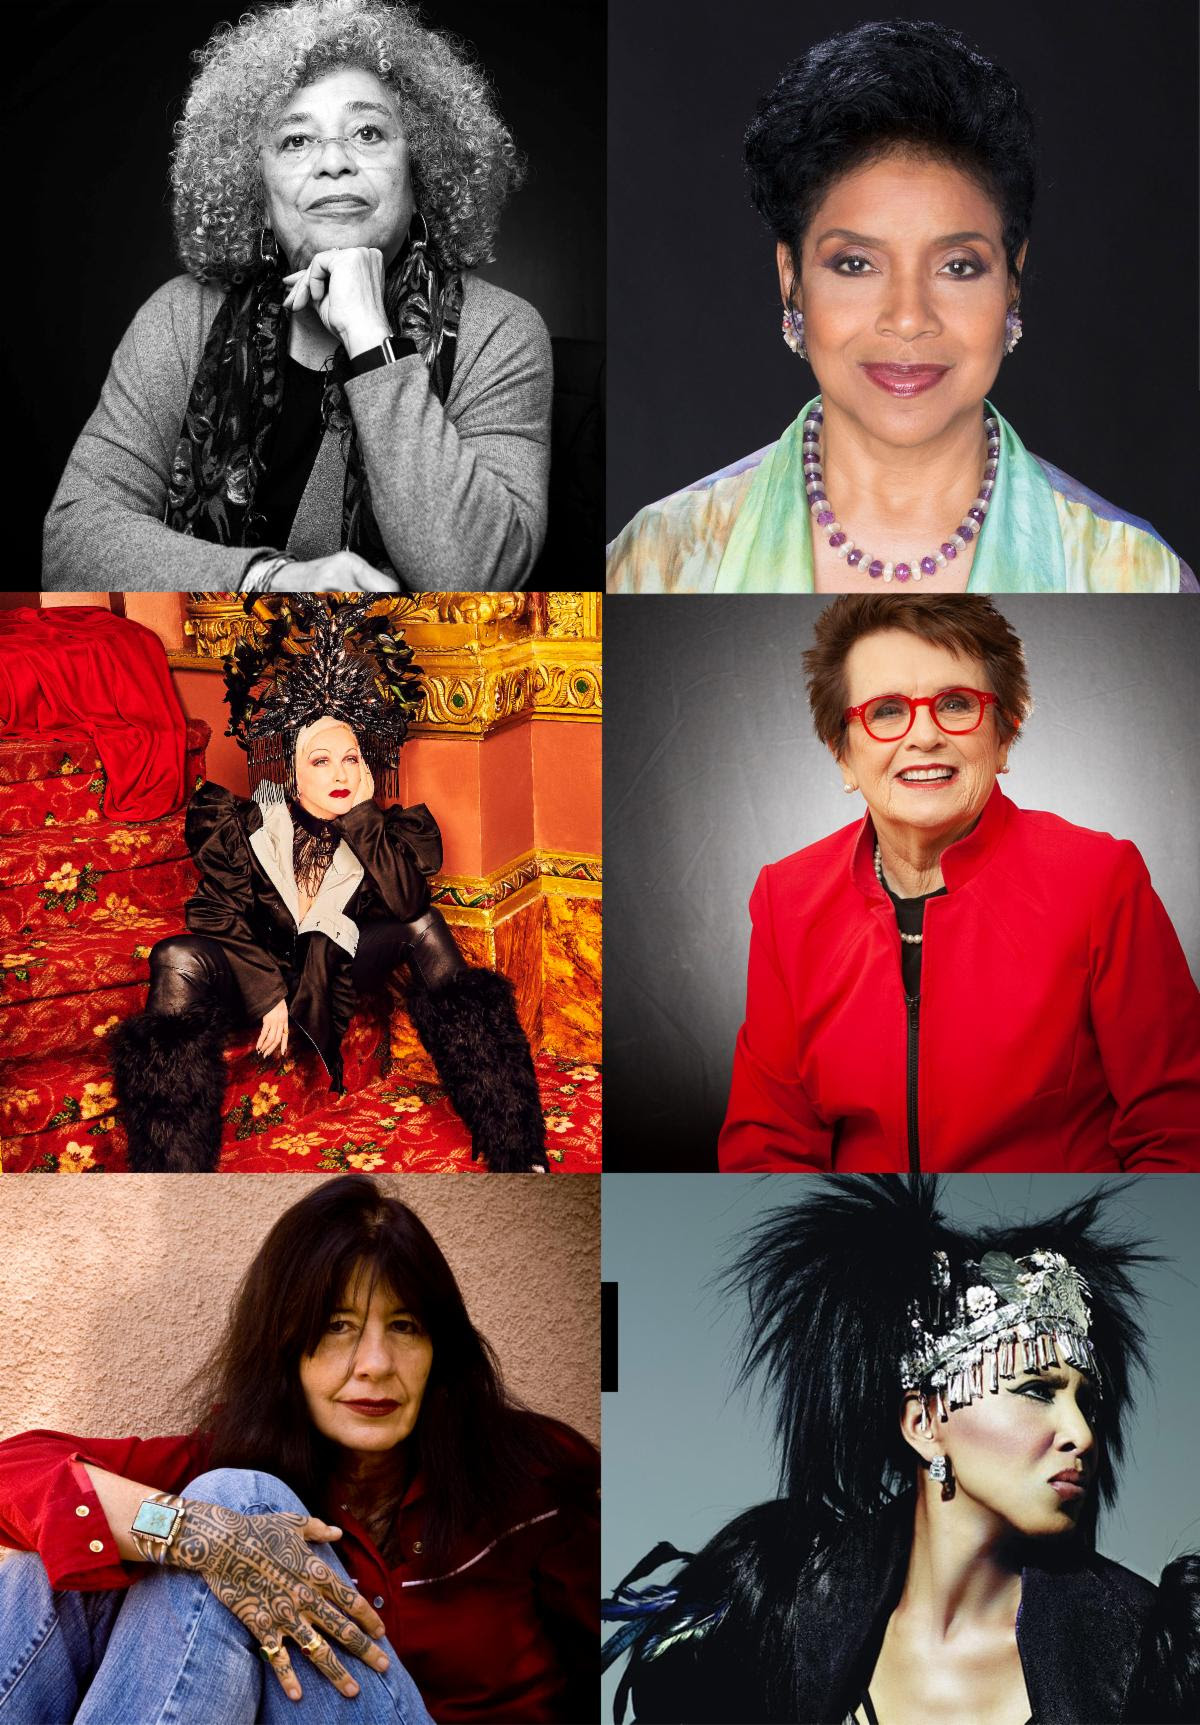 Cyndi Lauper, Phylicia Rashad, Billie Jean King, Joy Harjo Join Nona Hendryx and Angela Davis for 'Radical Healing' on August 14